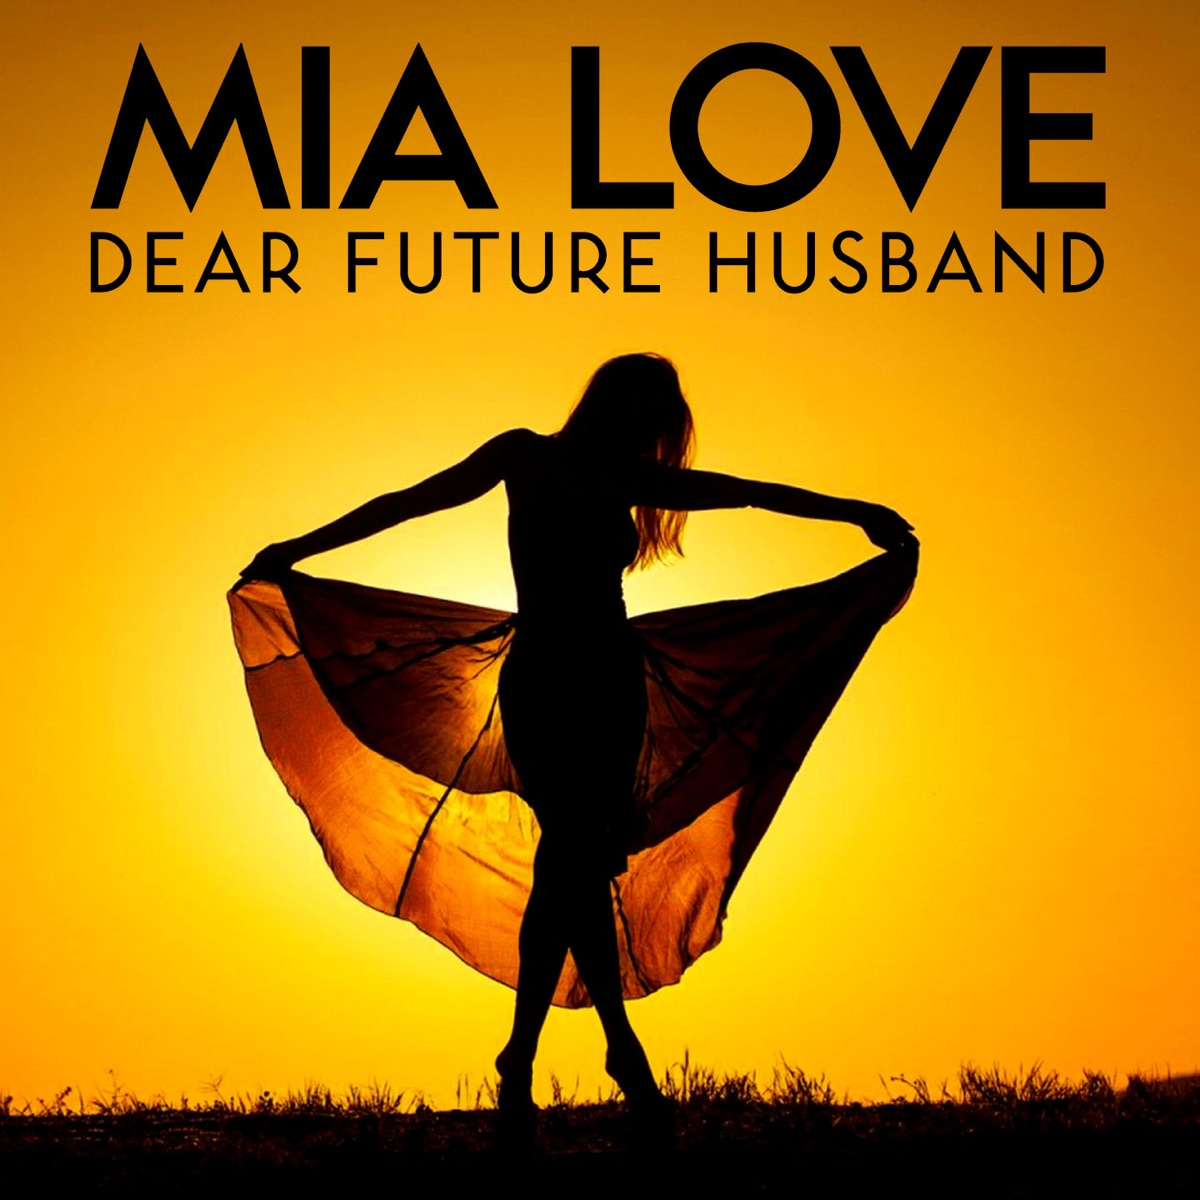 Dear Future Husband - Single Mia Love CD cover